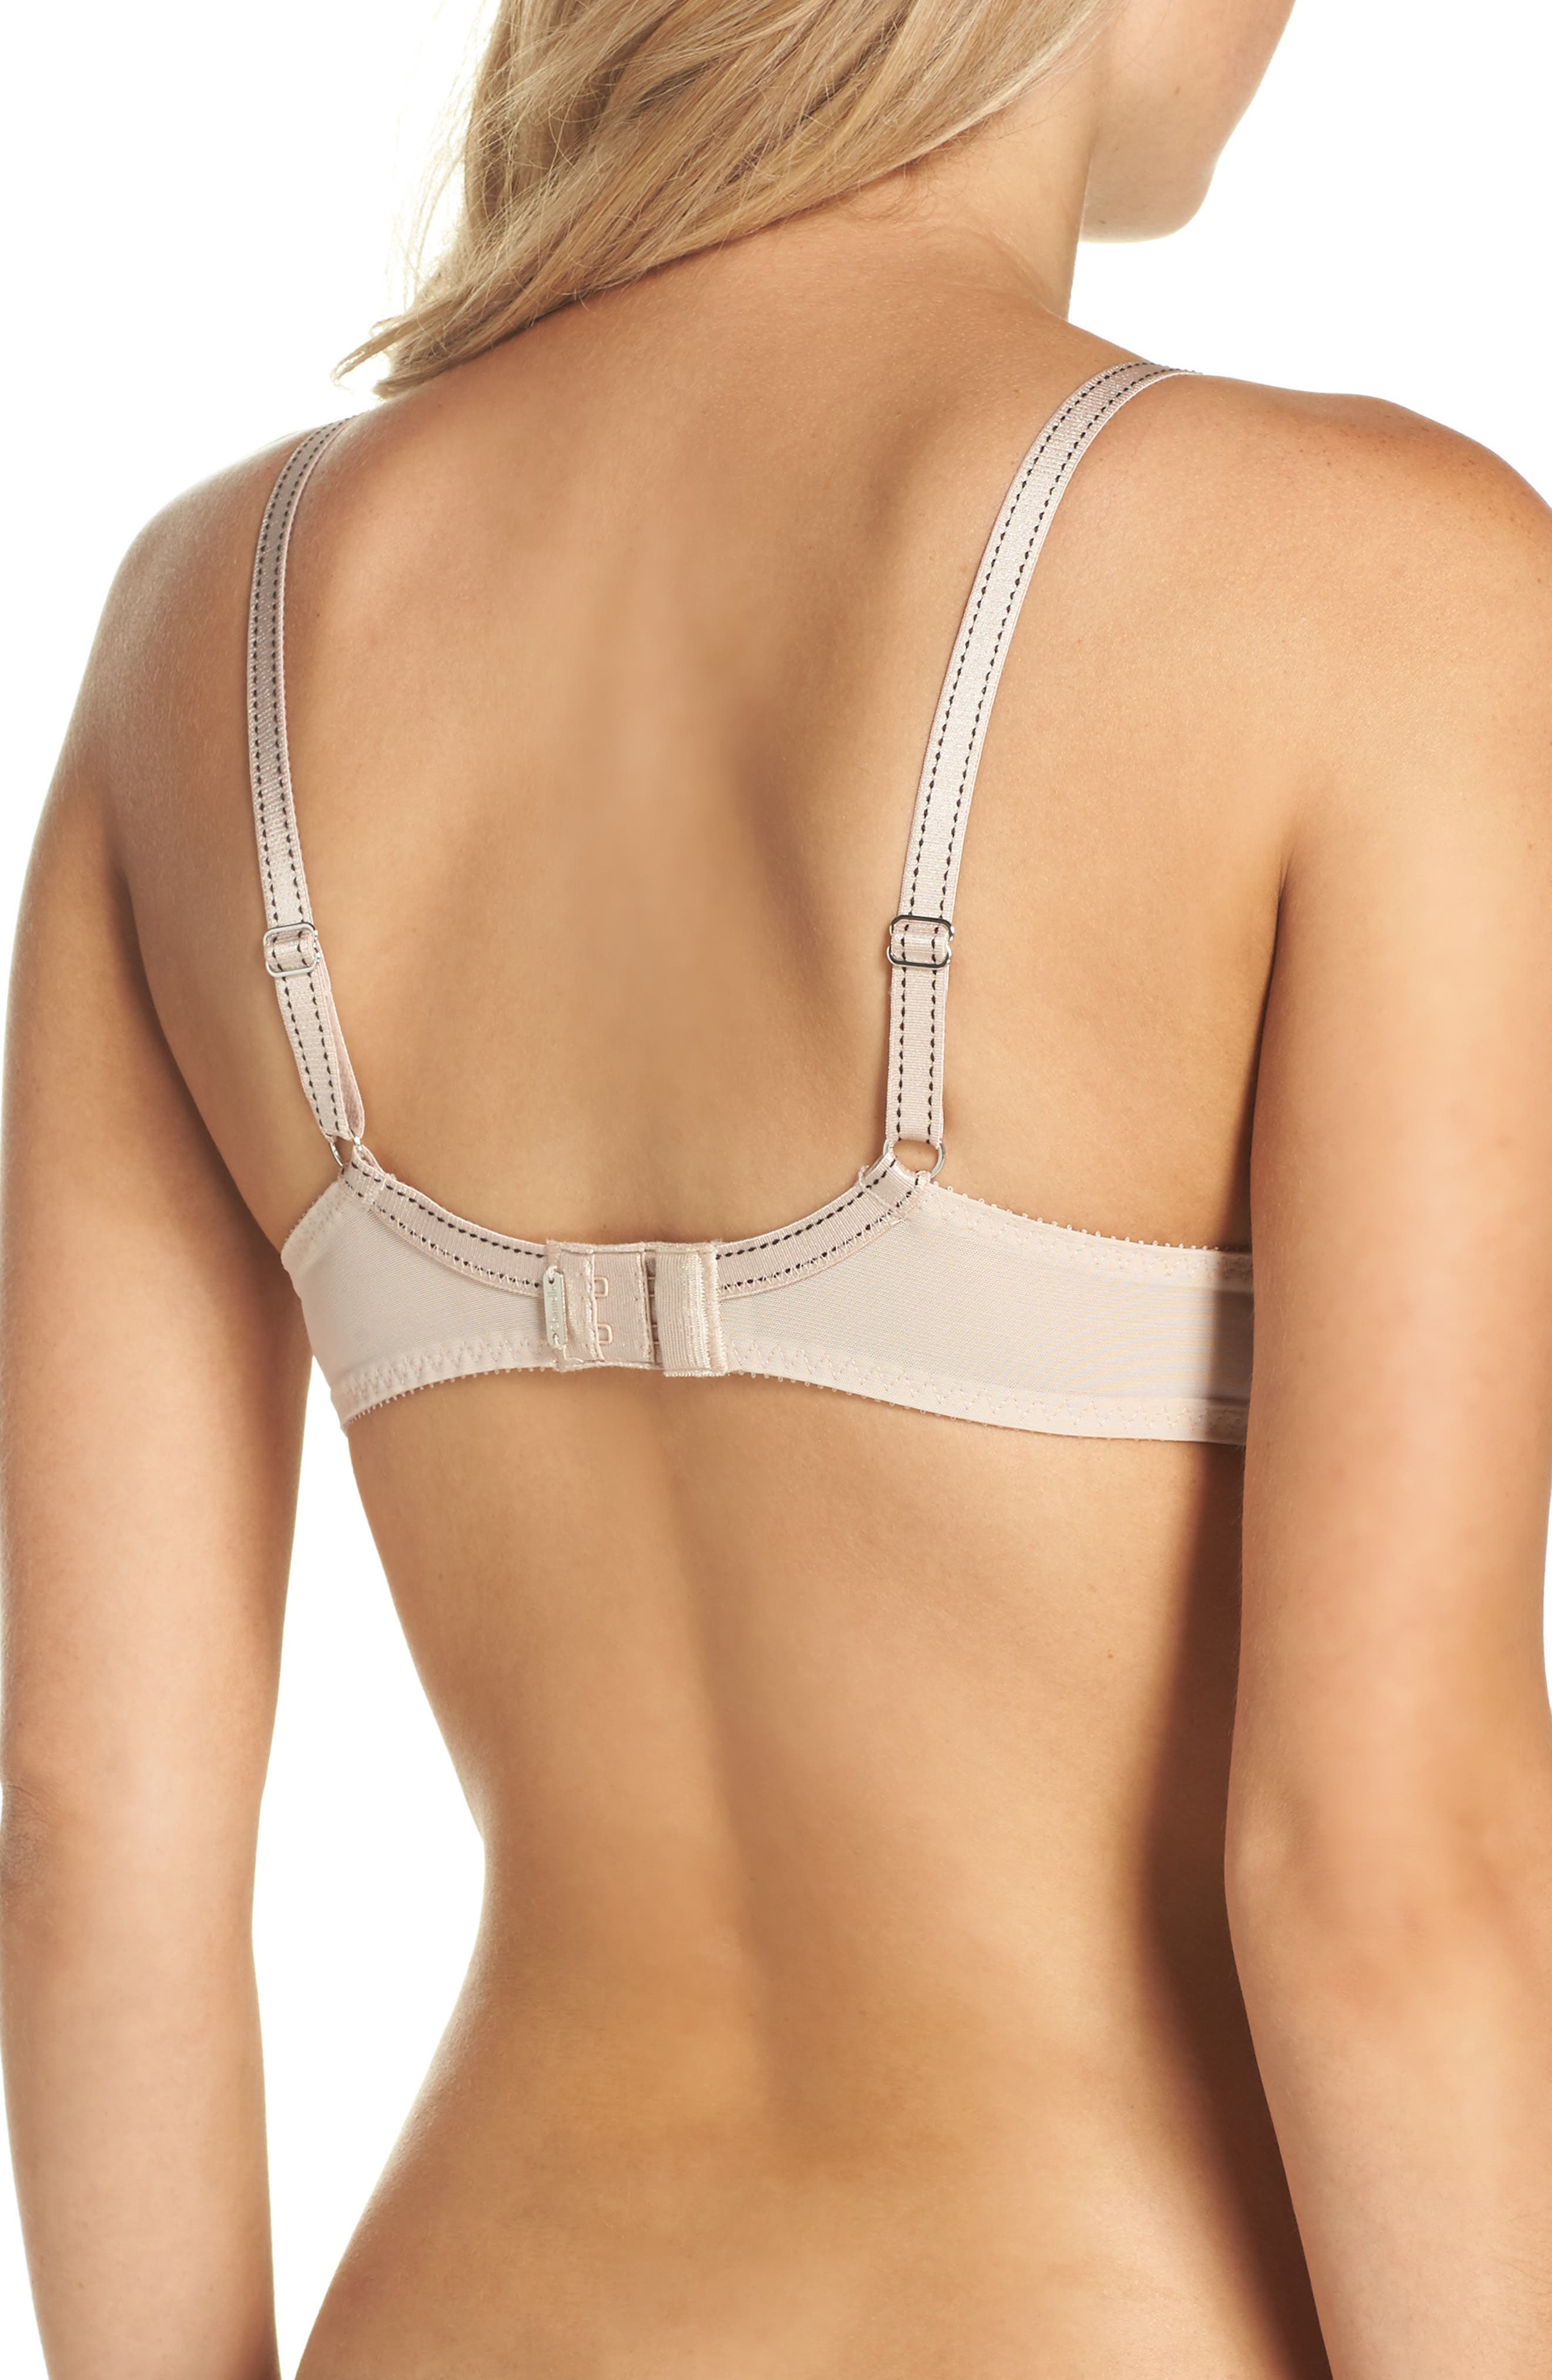 Alternate Image 2  - Chantelle Intimates 'Rive Gauche 3286' Full Coverage Underwire T-Shirt Bra